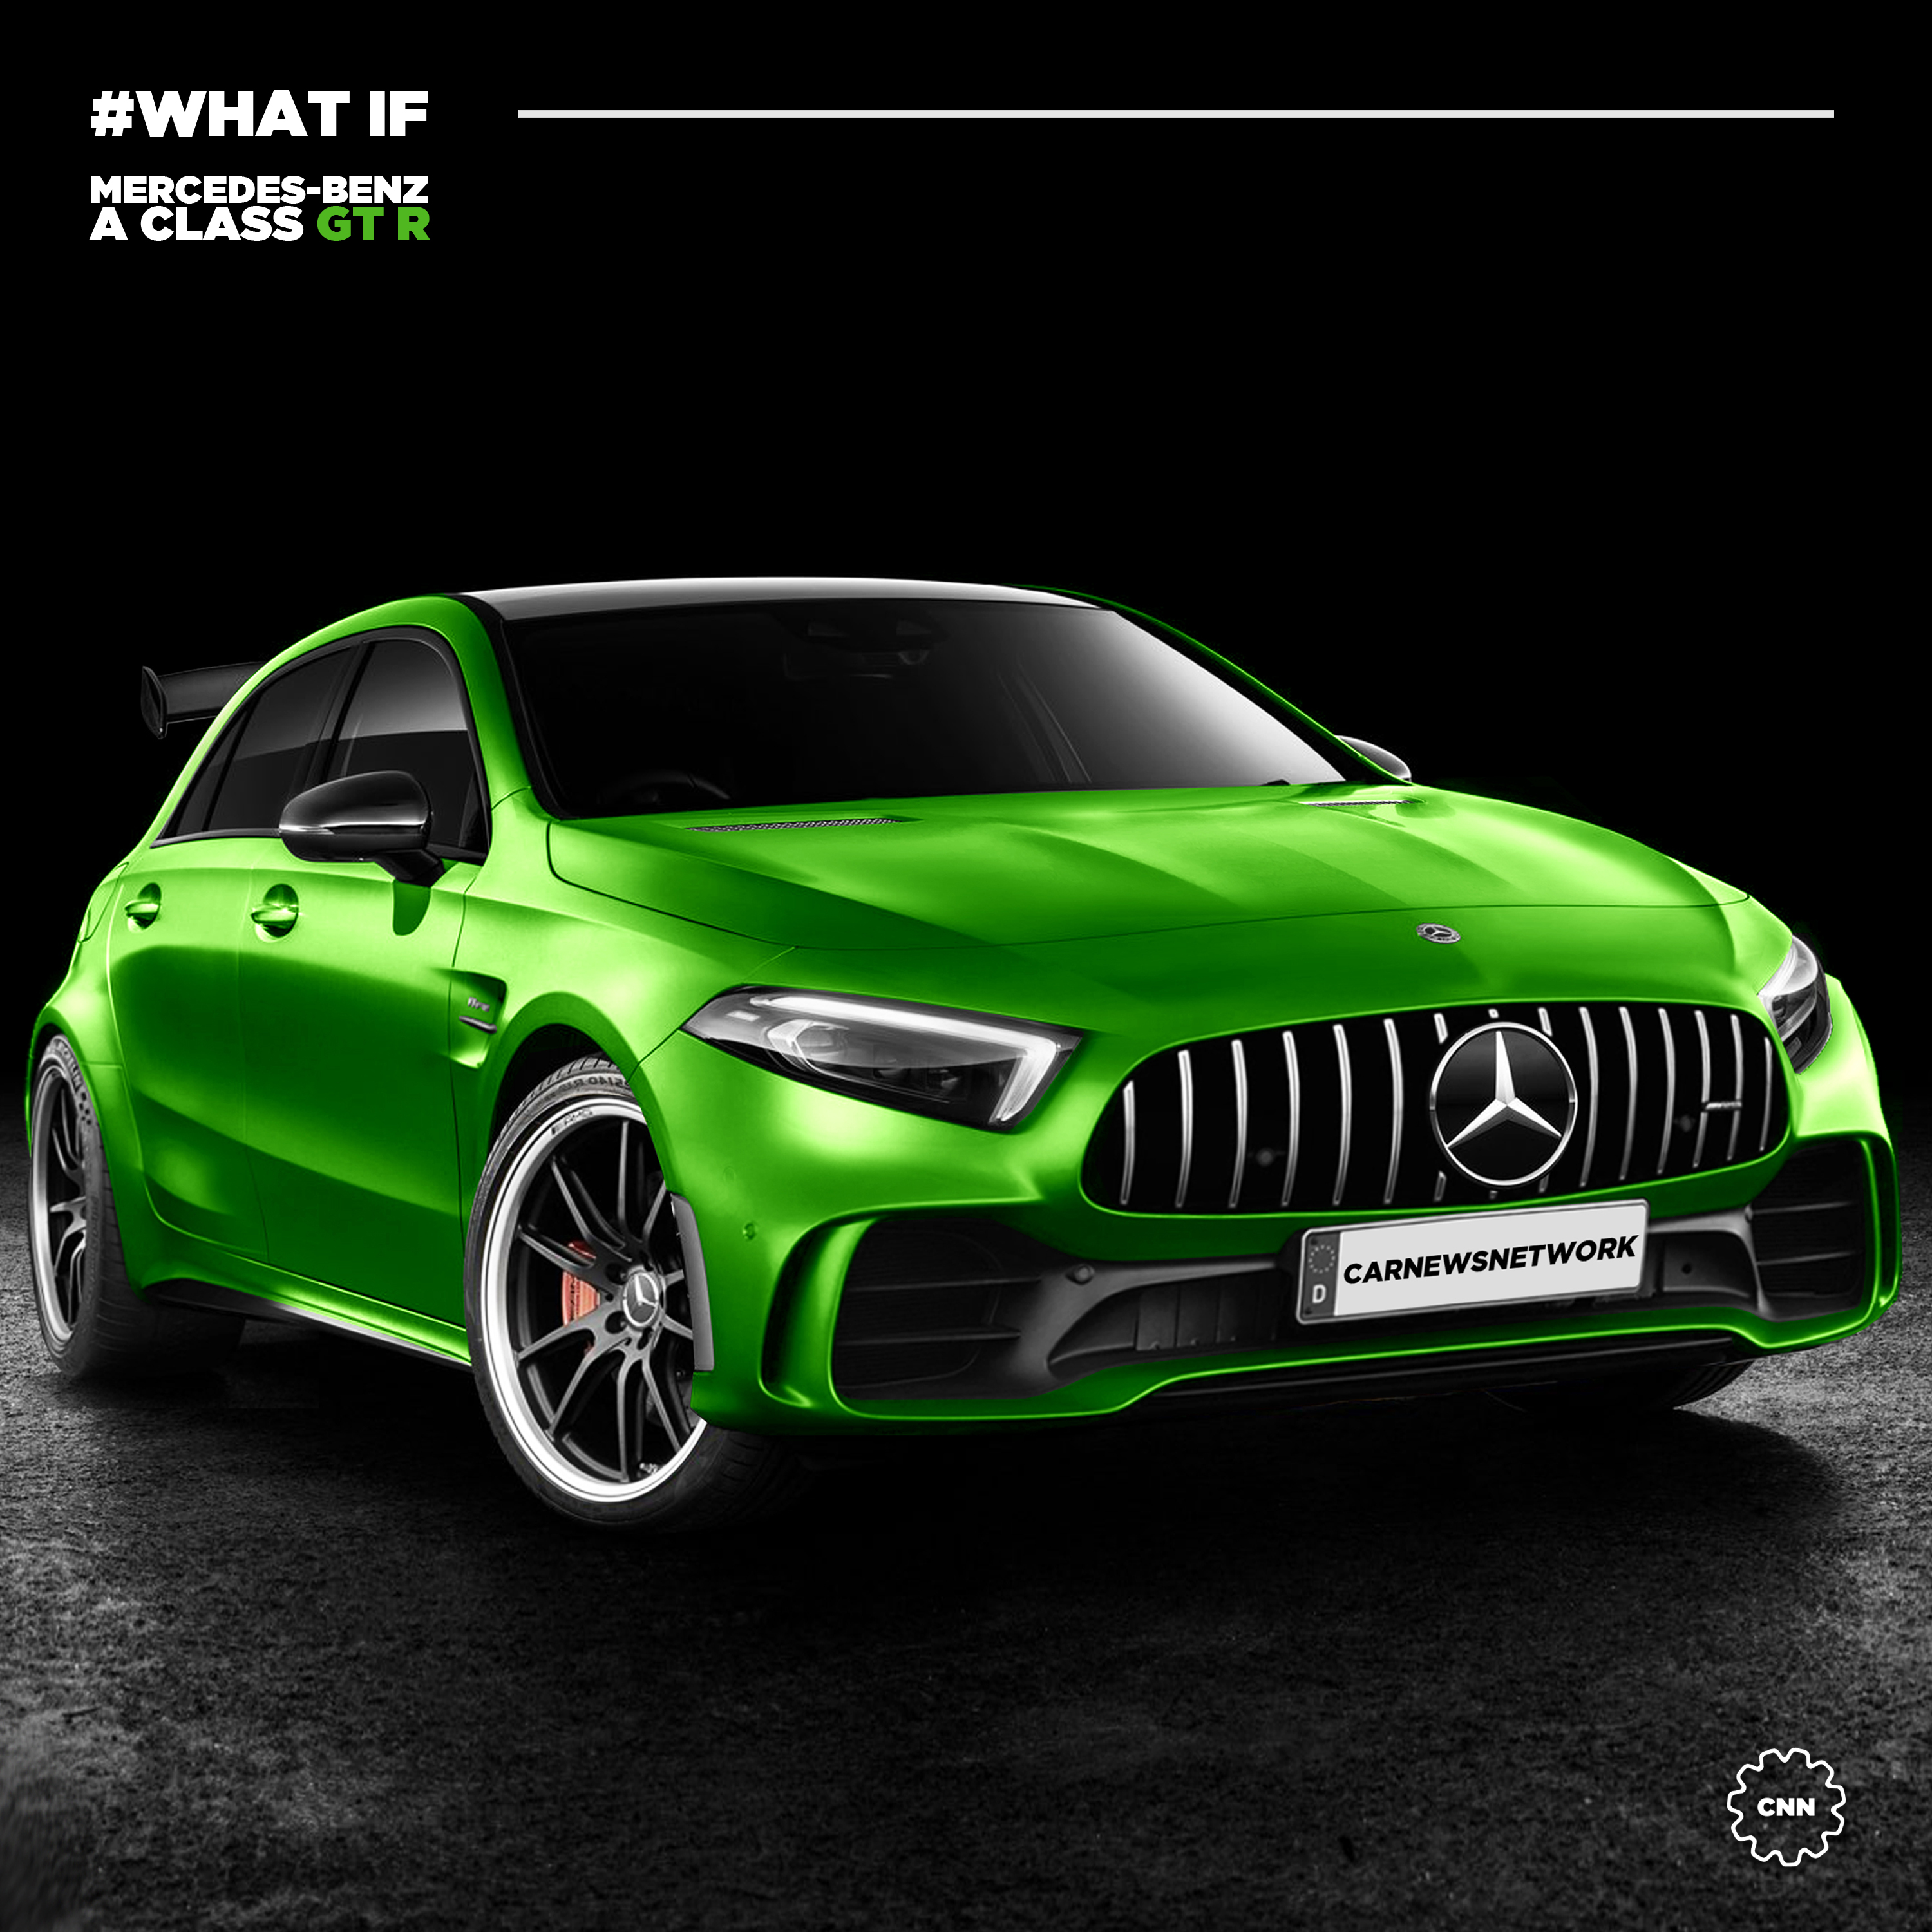 Of Course There's Already A Render Of The 2020 Mercedes-AMG A45